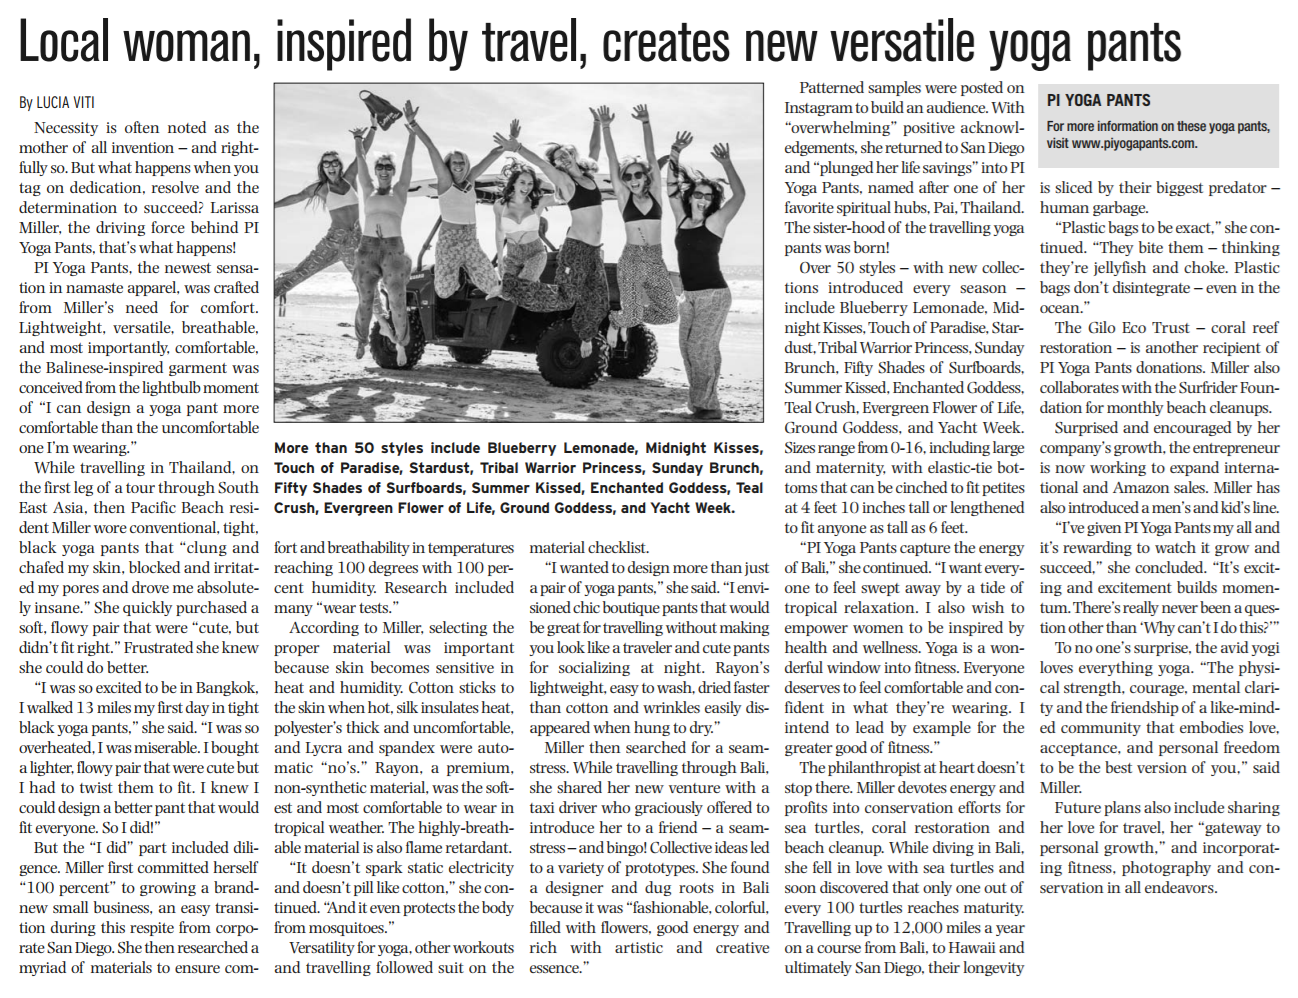 PIYOGA pants was featured in La Jolla Village News a local San Diego Newspaper. Press release